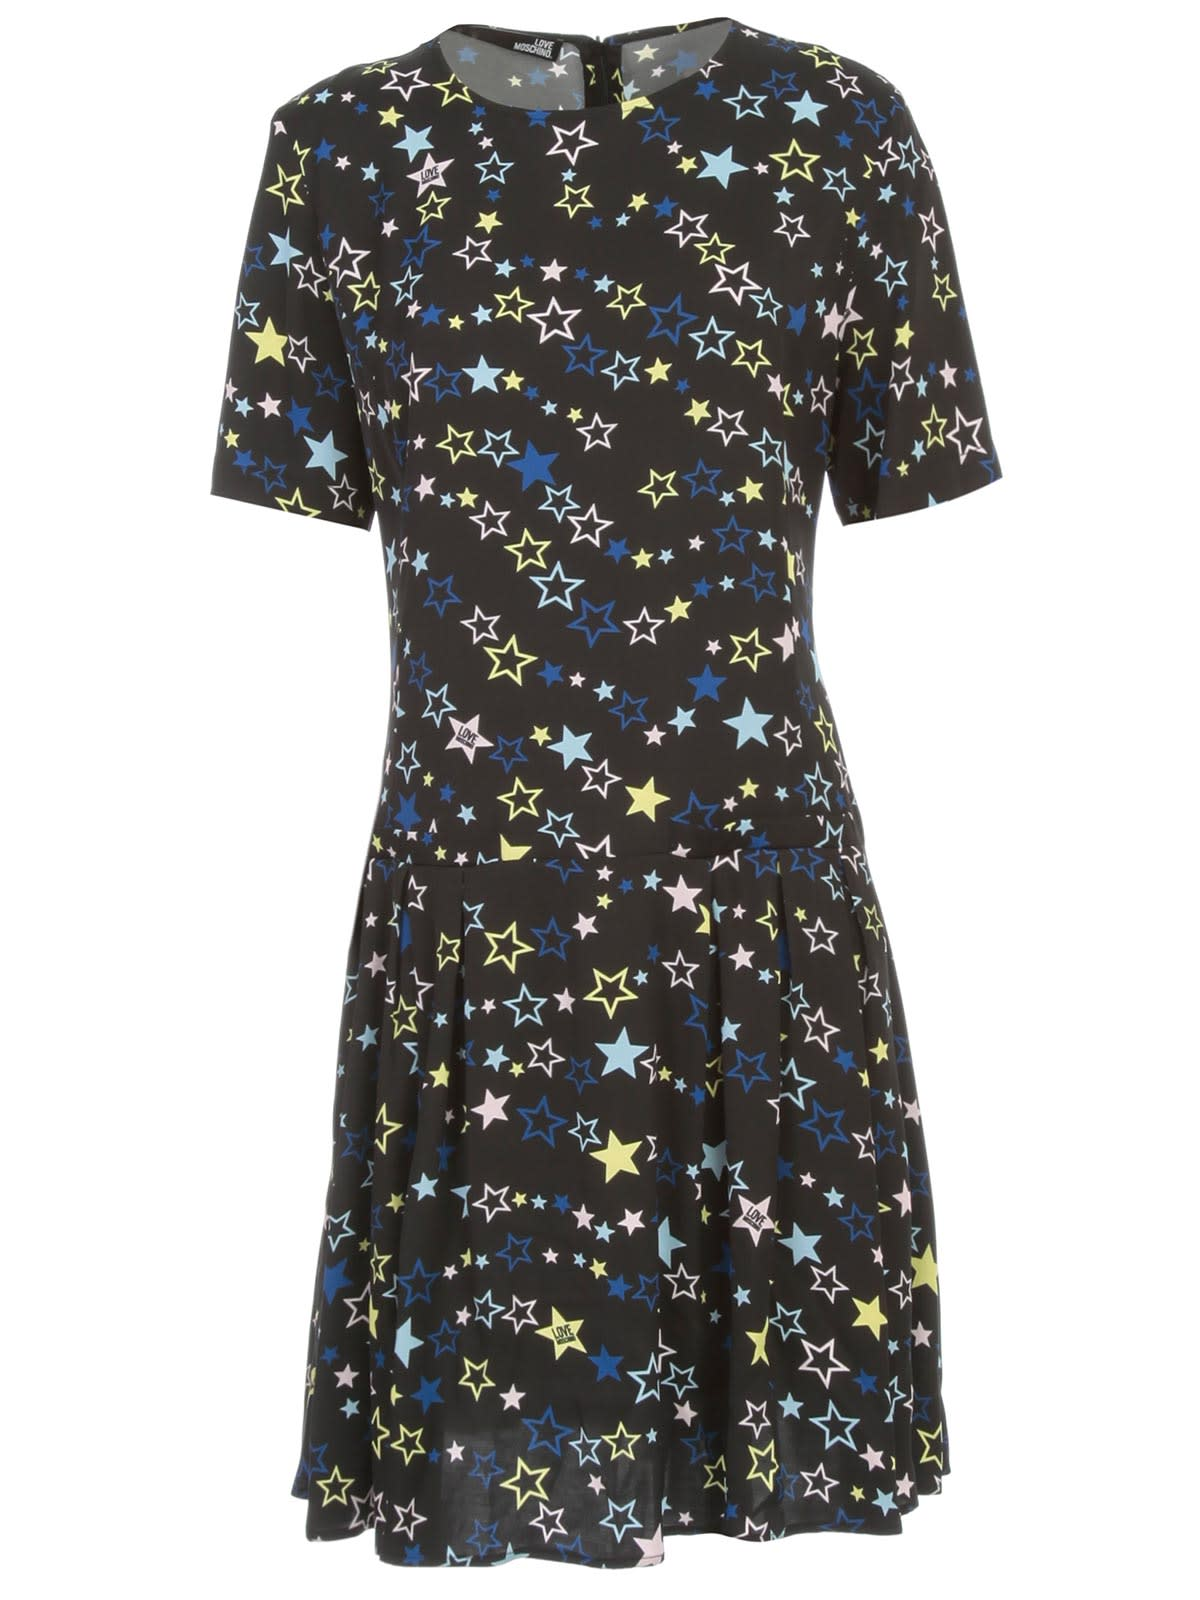 Buy Love Moschino Dress S/s Crew Neck Stars Printing W/flounce online, shop Love Moschino with free shipping